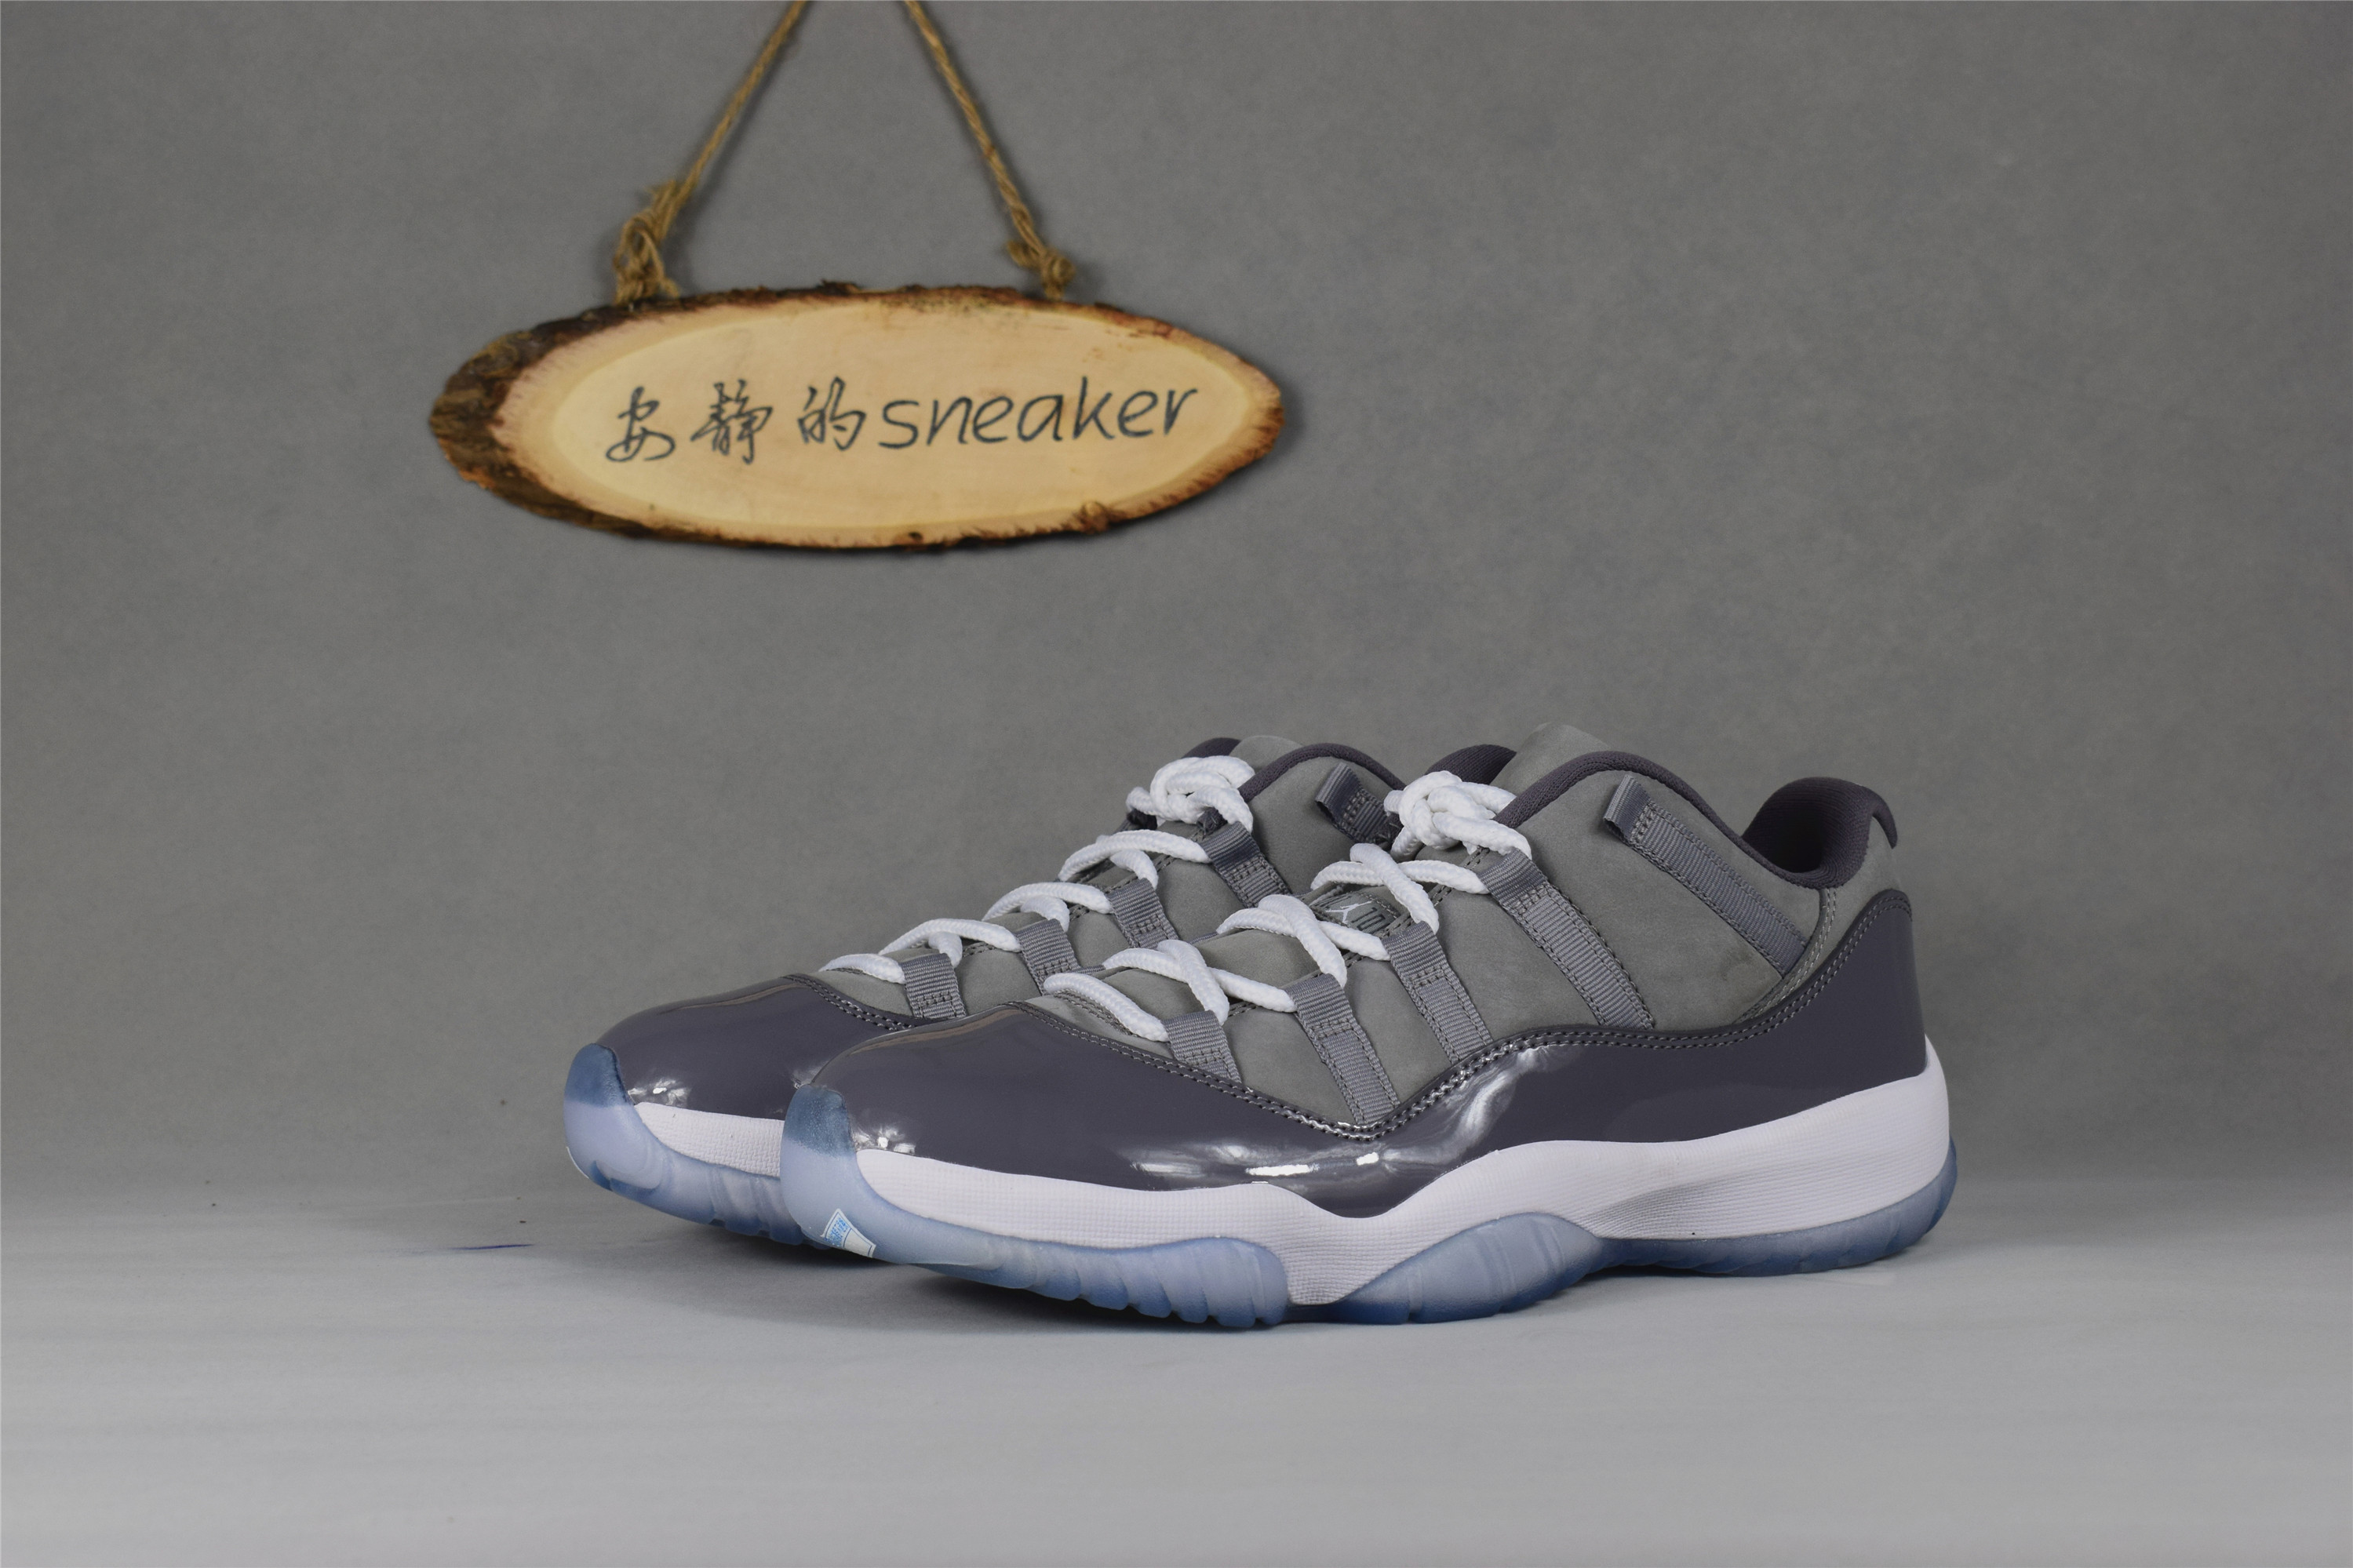 【安静】AIR JORDAN 11 low  AJ 11 low 酷灰 低帮 528895-003